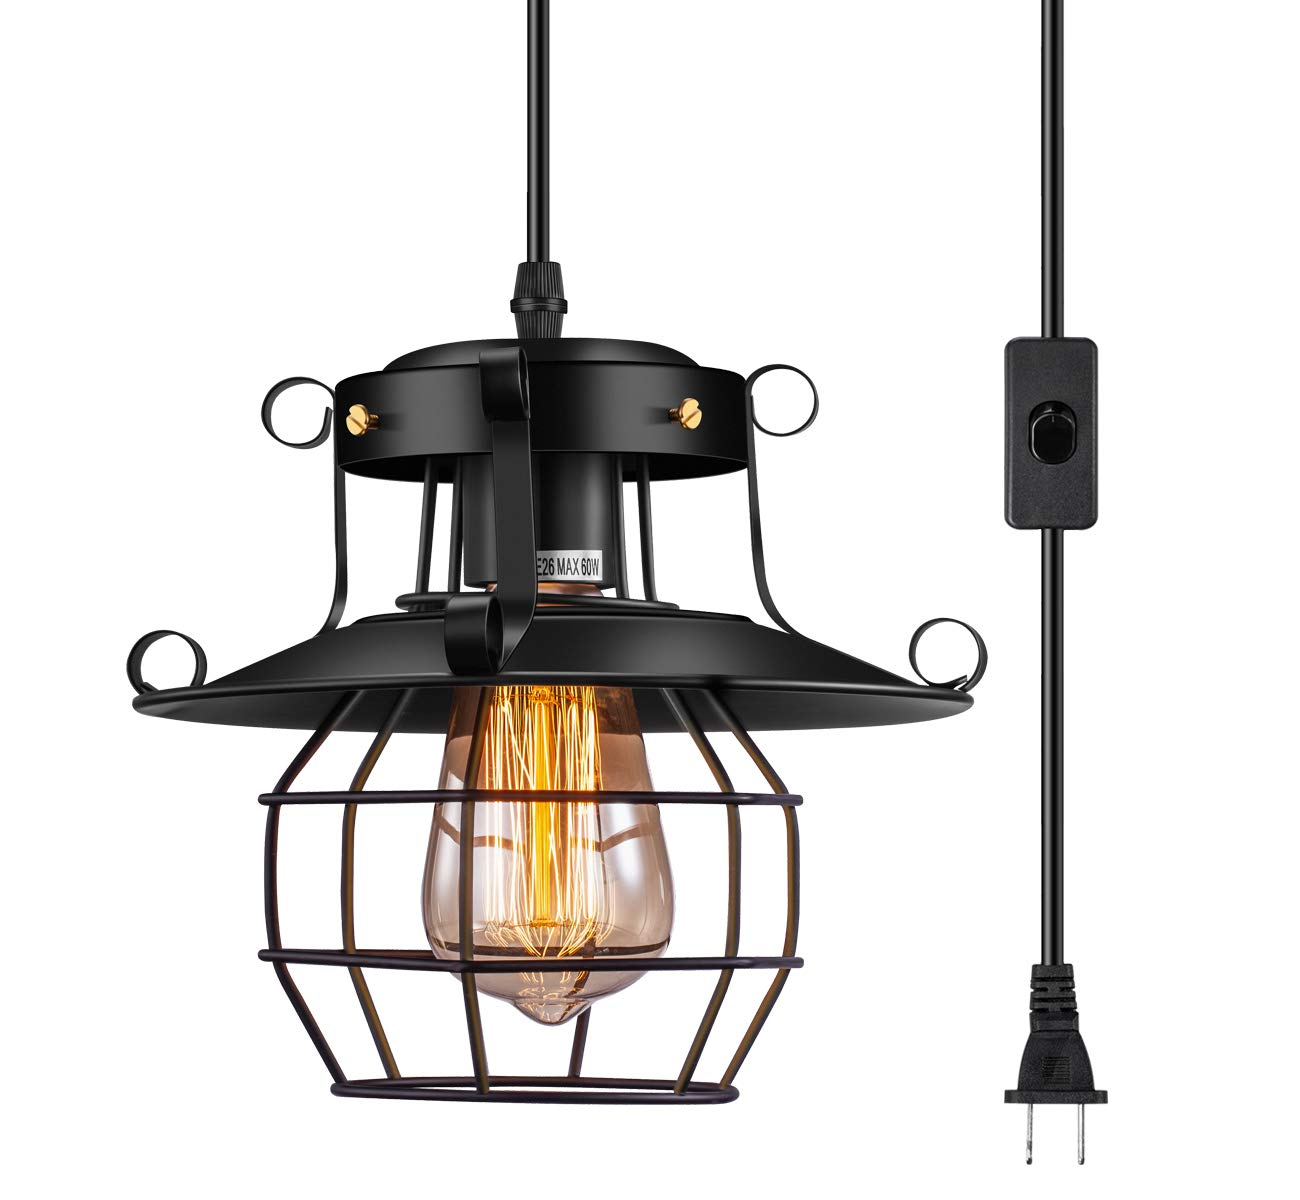 Industrial Plug in Hanging Light, Elibbren E26 E27 Base Vintage Rustic Caged Style Pendant Light Plug in Light Fixture with 14.87 Plug in Cord for Kitchen Farmhouse Dining Room 1 Pack